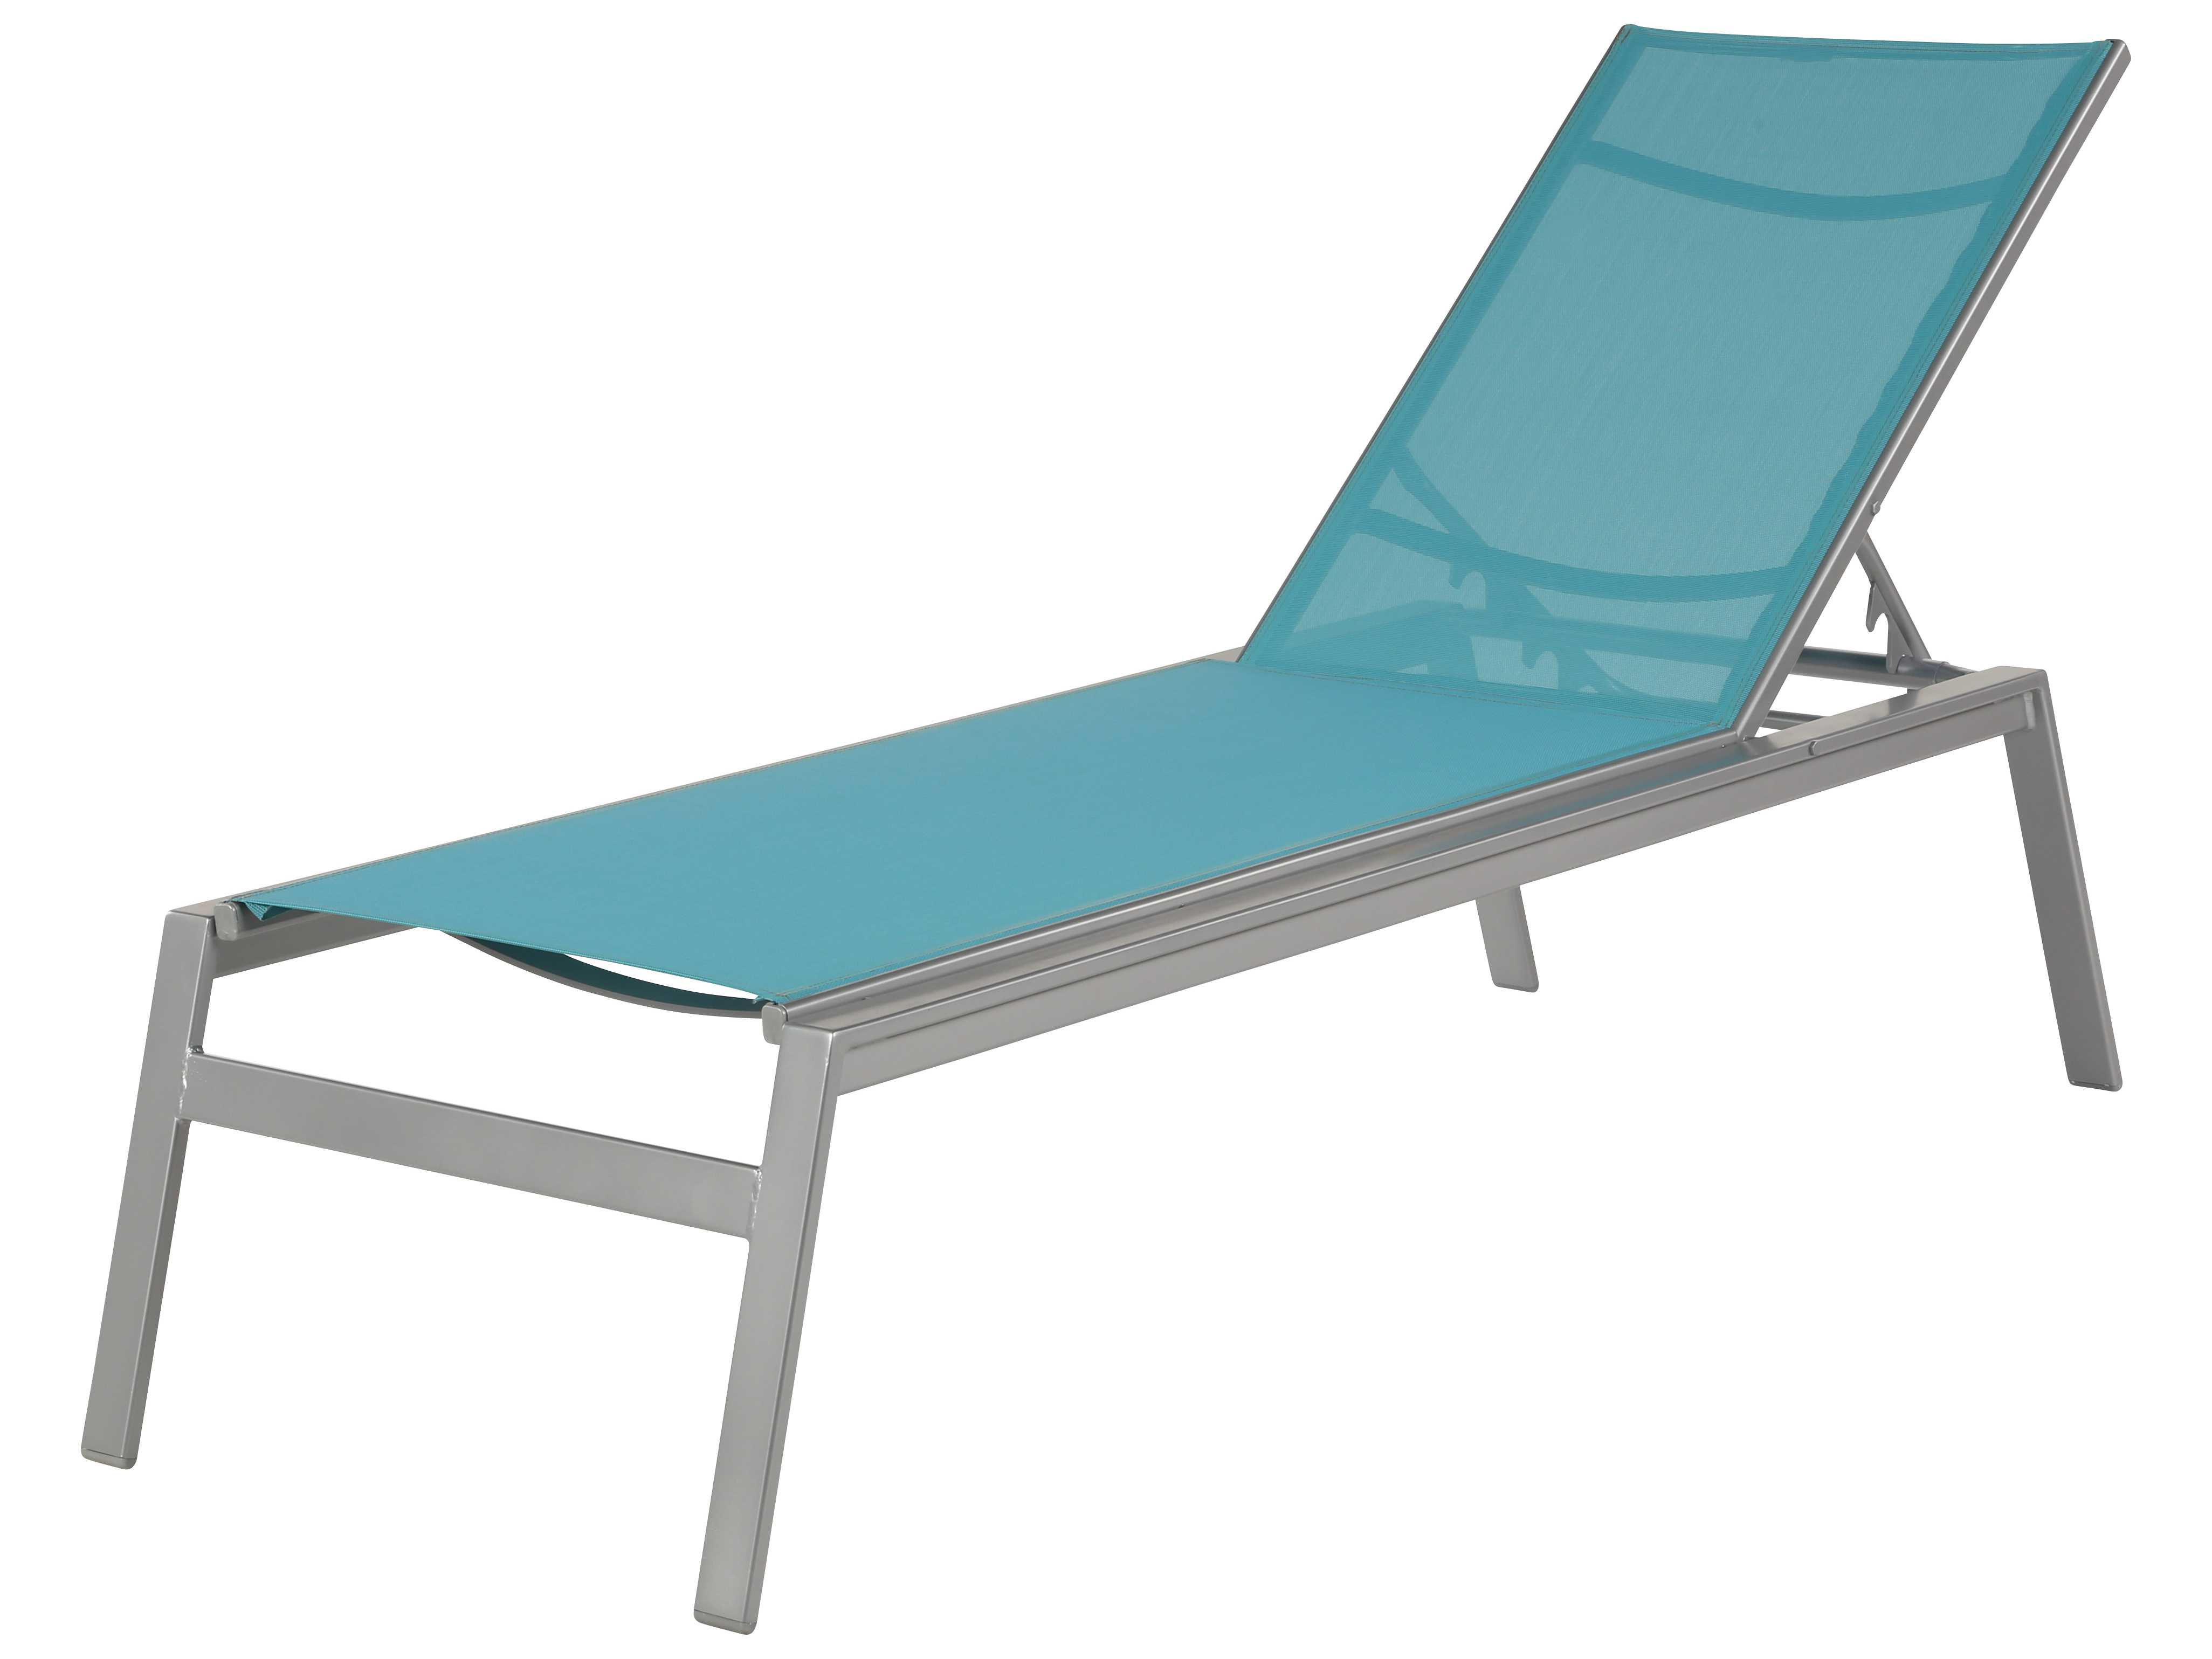 Windward design group skyway sling aluminum armless chaise for Aluminum sling chaise lounge